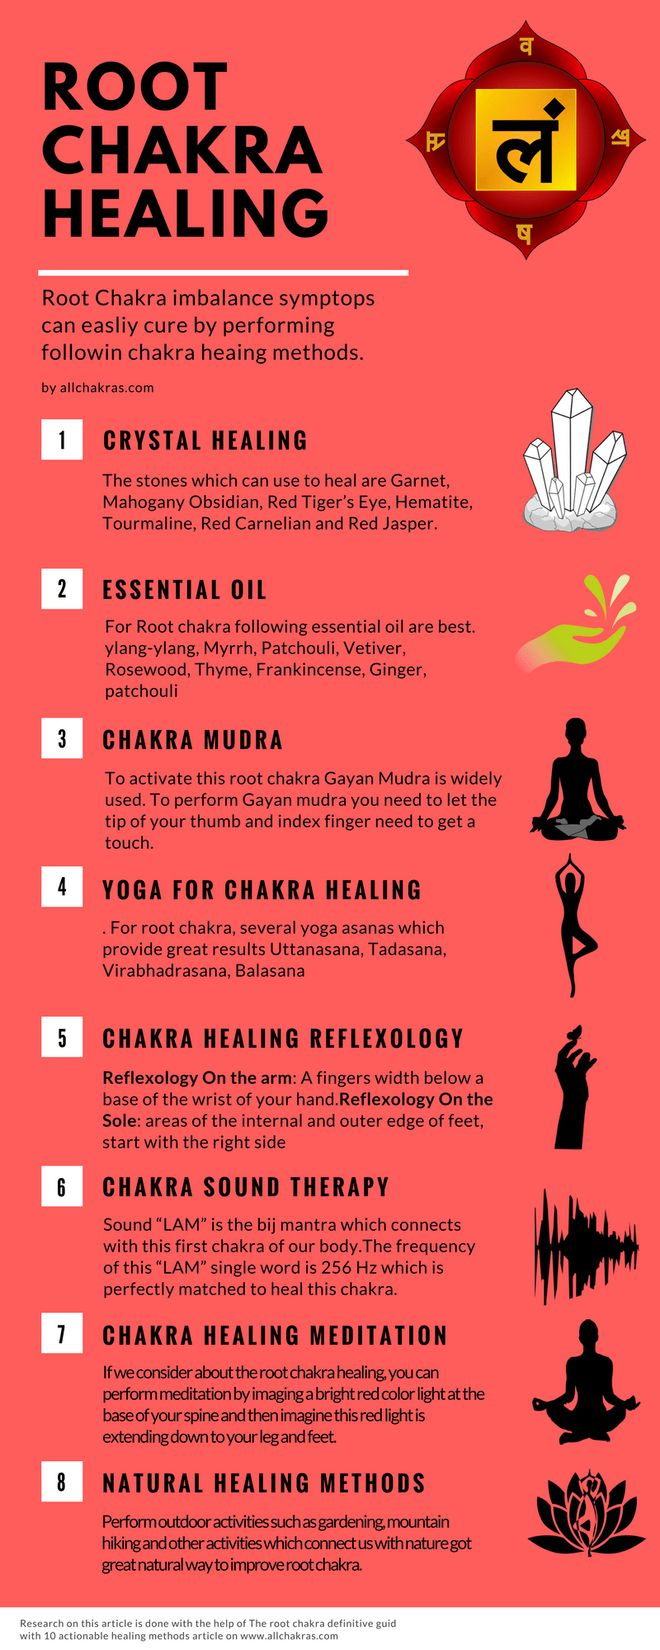 The #Rootchakra Definitive Guide With 10 Actionable Healing Methods #chakrahealing #allchakra